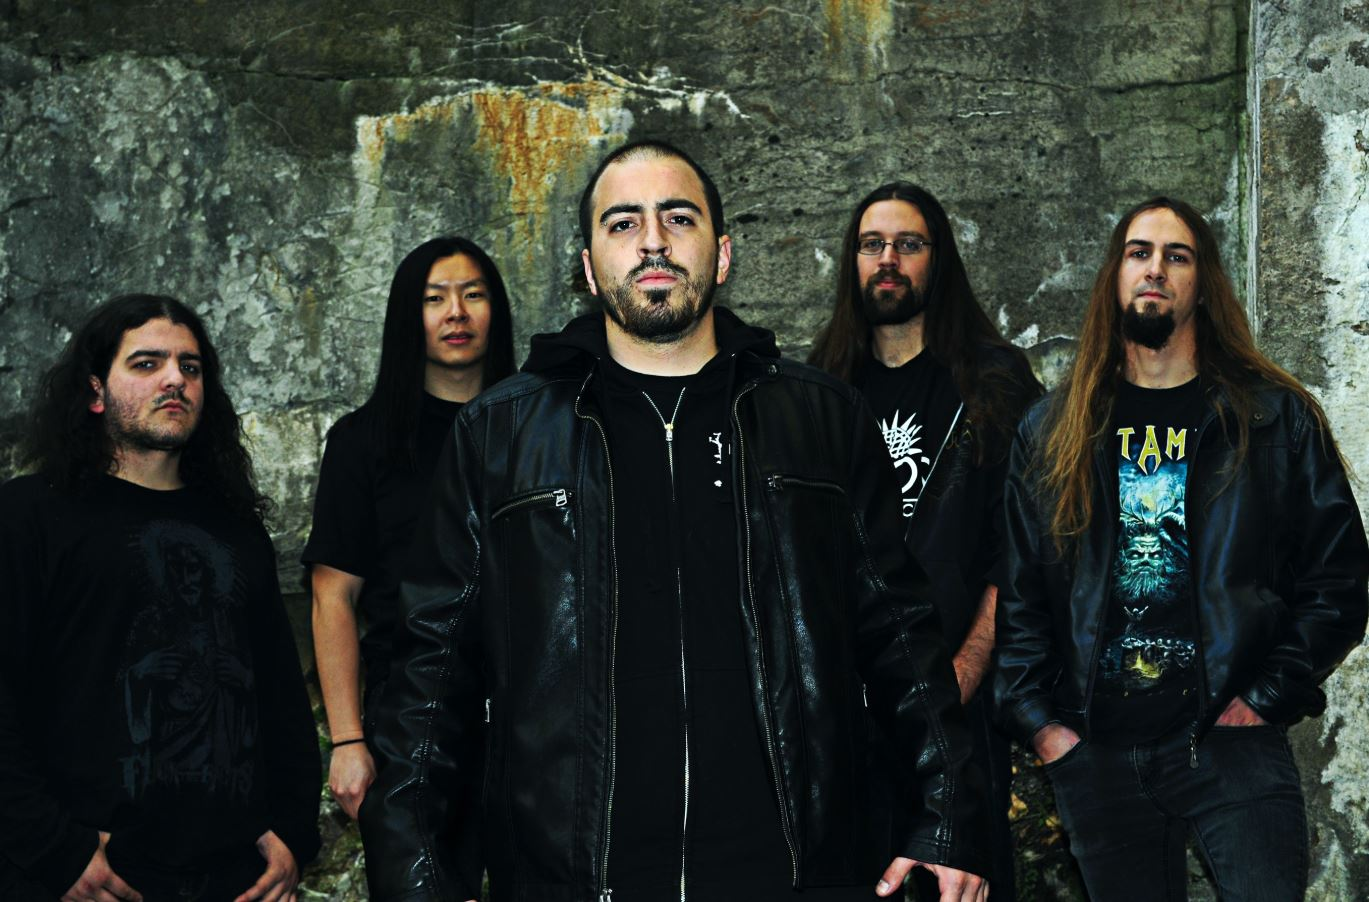 """Exclusive premiere: Accursed Spawn """"Dogmatic Affliction"""" (Guitar Playthrough)"""